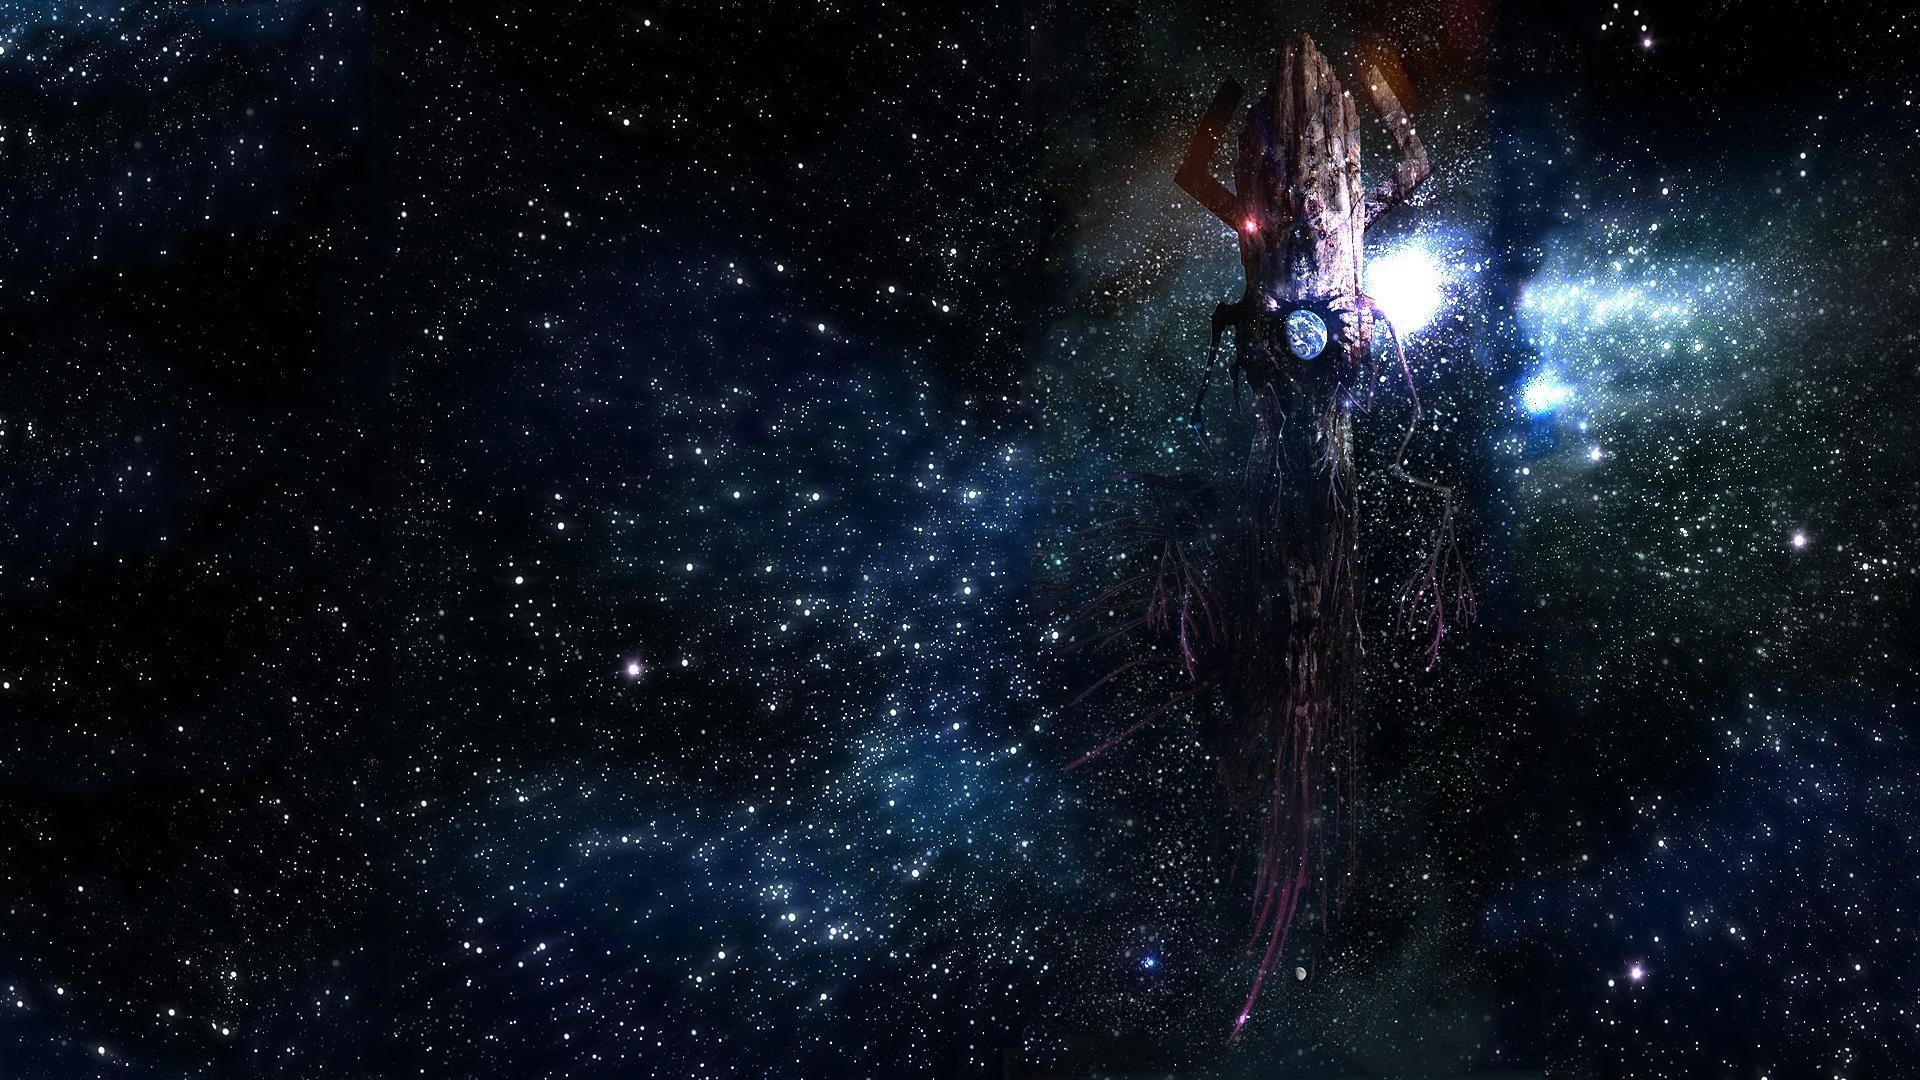 Res: 1920x1080, Galactus Wallpaper 7 263882 Images HD Wallpapers| Wallfoy.com .